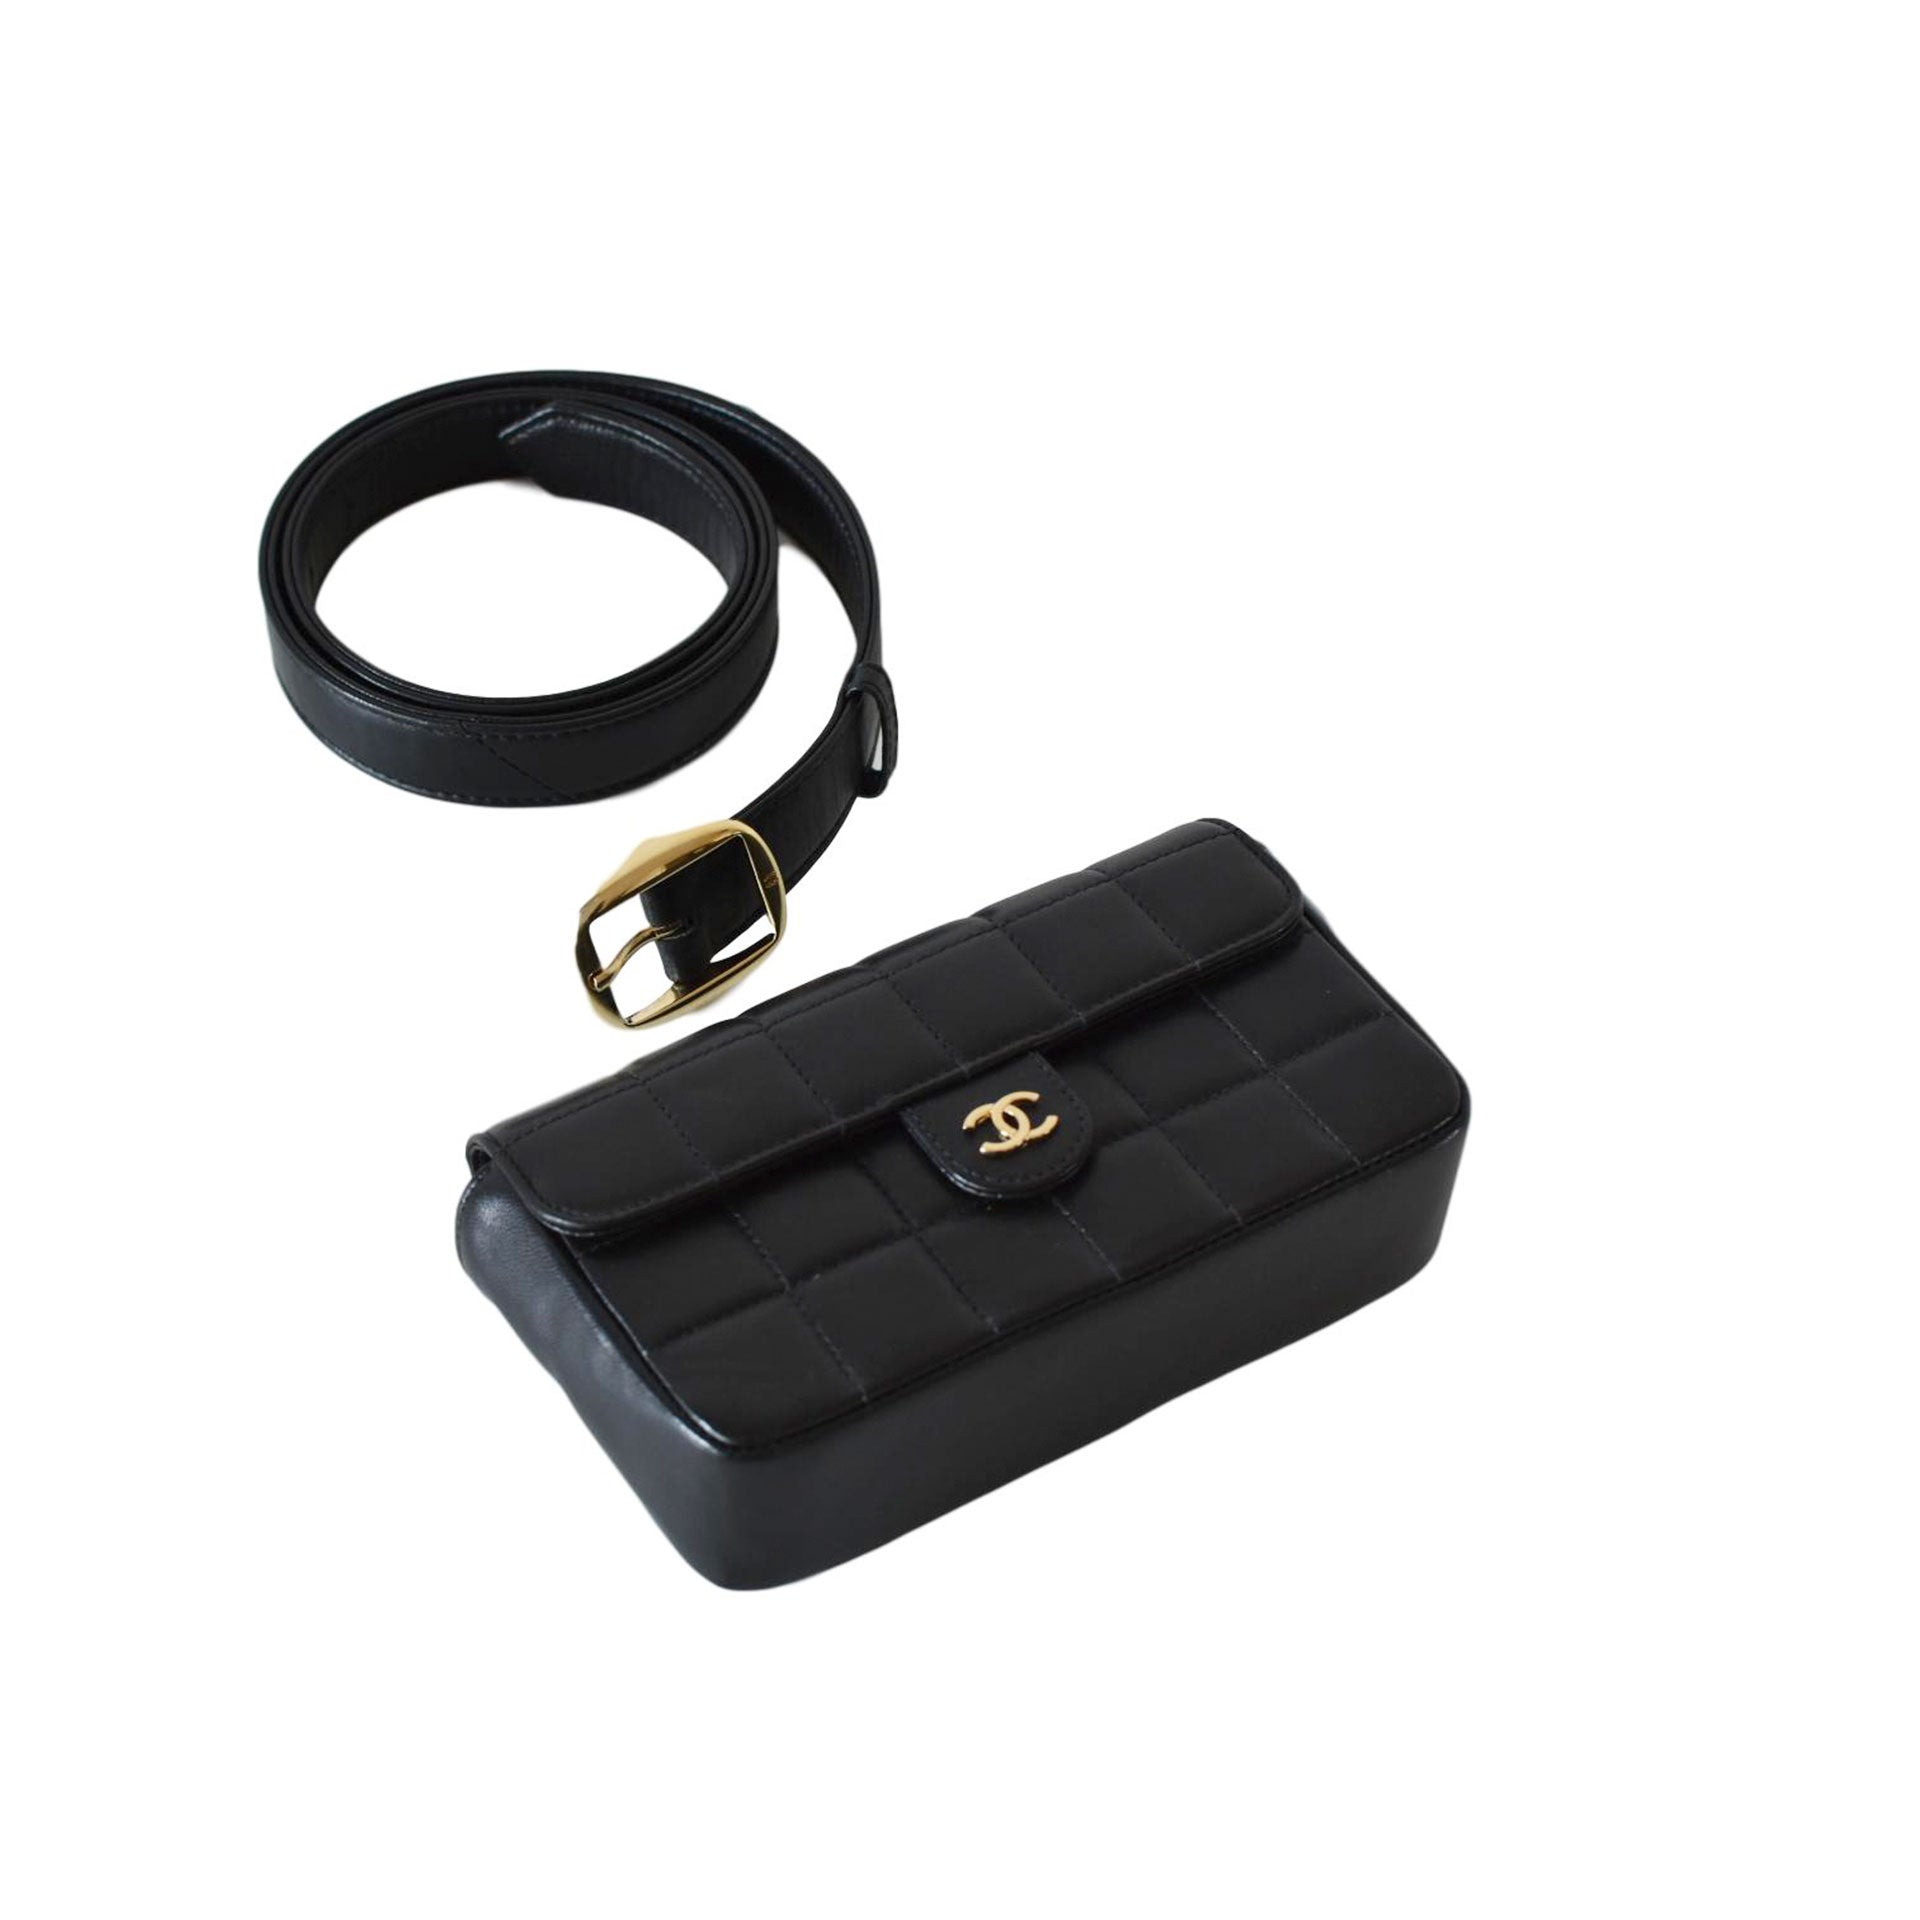 9c7979e184fd Chanel Vintage Square Quilted Fanny Pack Waist Bum Bag – House of Carver